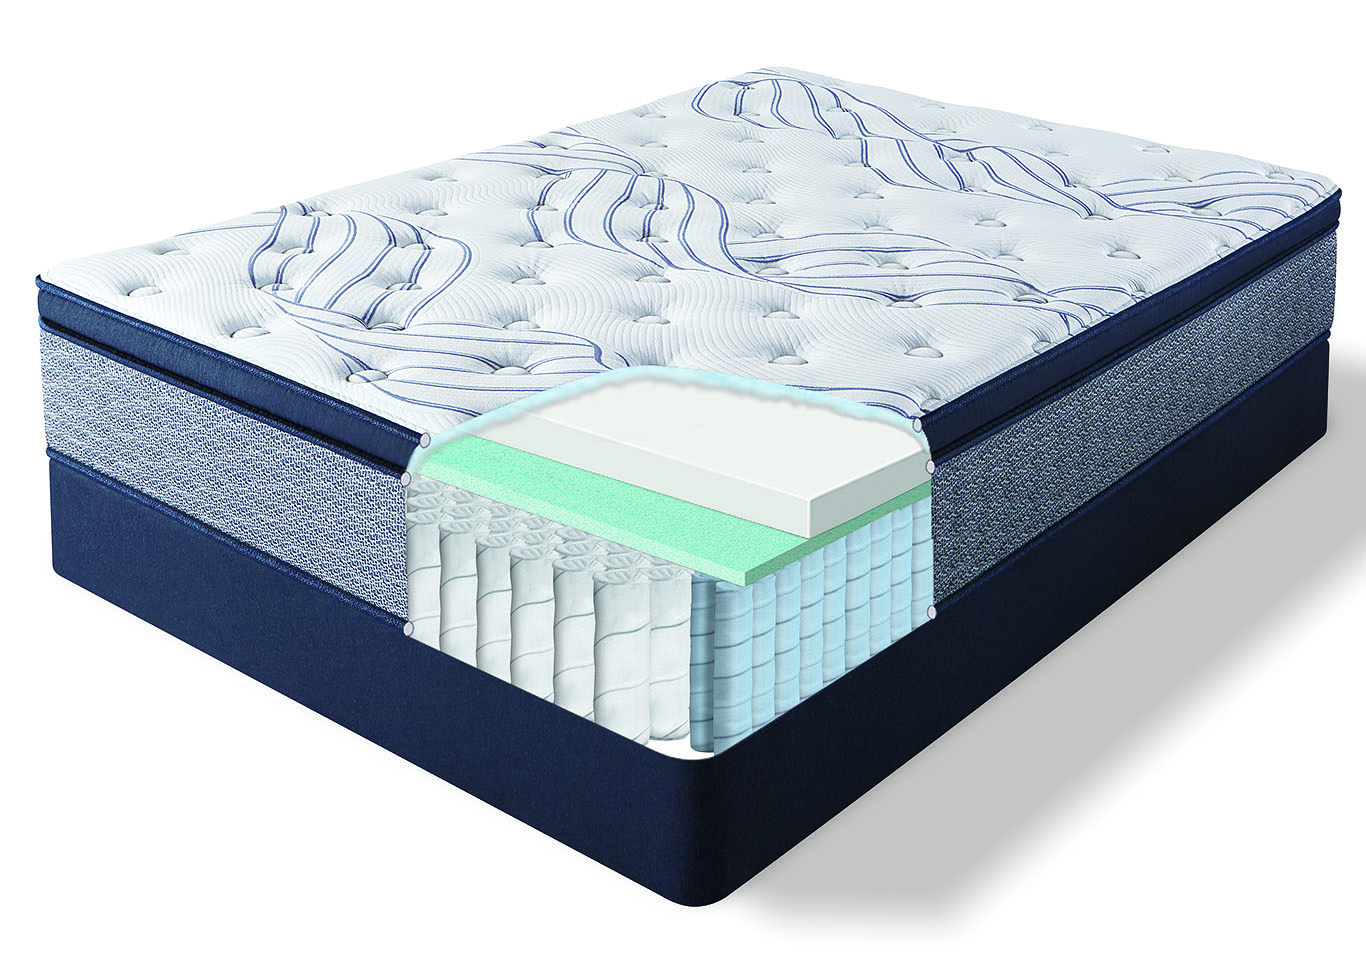 Kleinmon II Pillow Top Firm Full Mattress,Huffman Koos